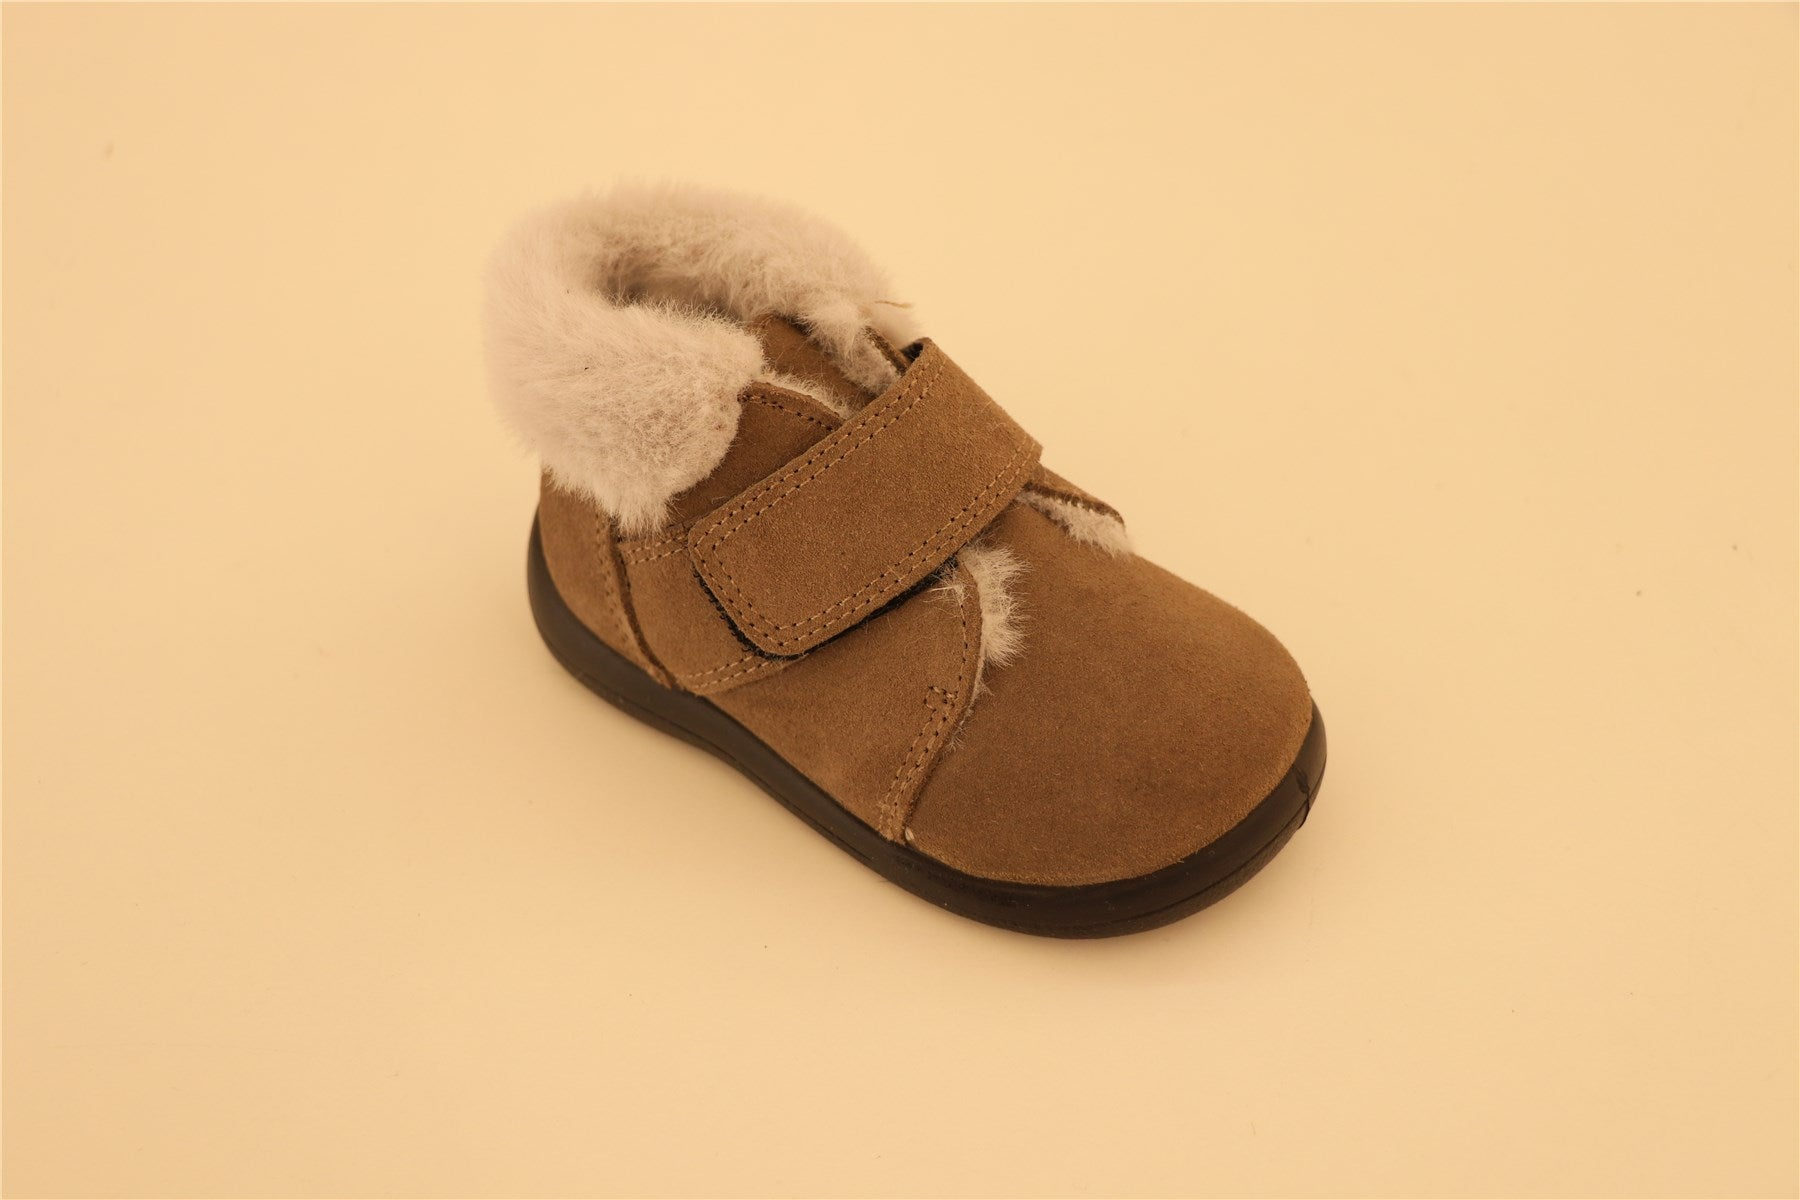 Brown Suede  With White Fur Booties With Strap